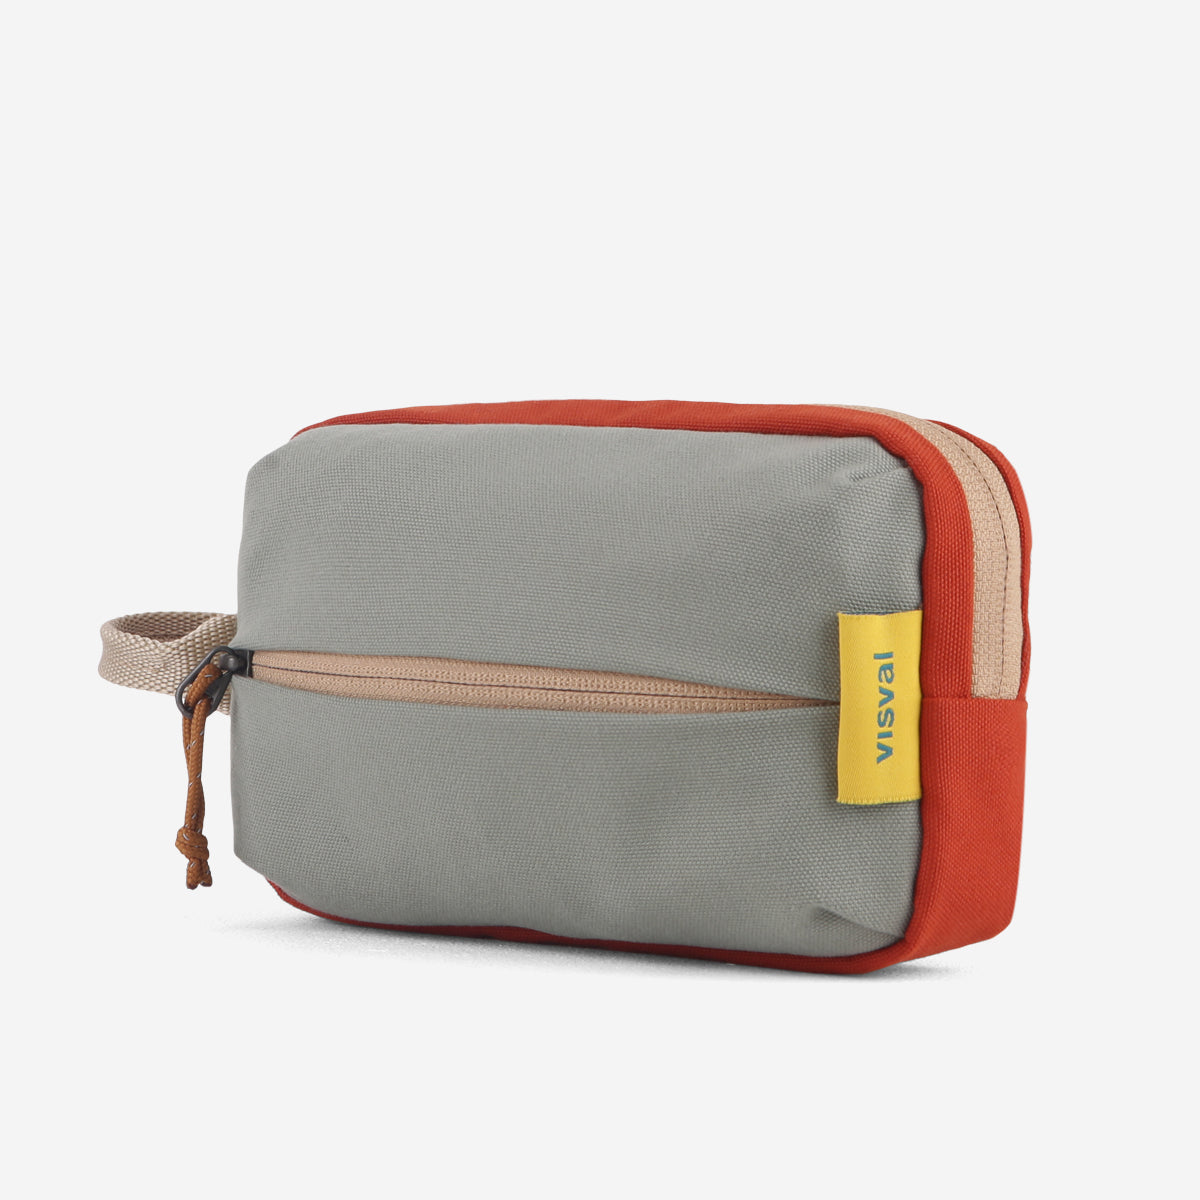 [COLLABS] Dopp Kit VISVAL x Indy Ratna Series Light Olive